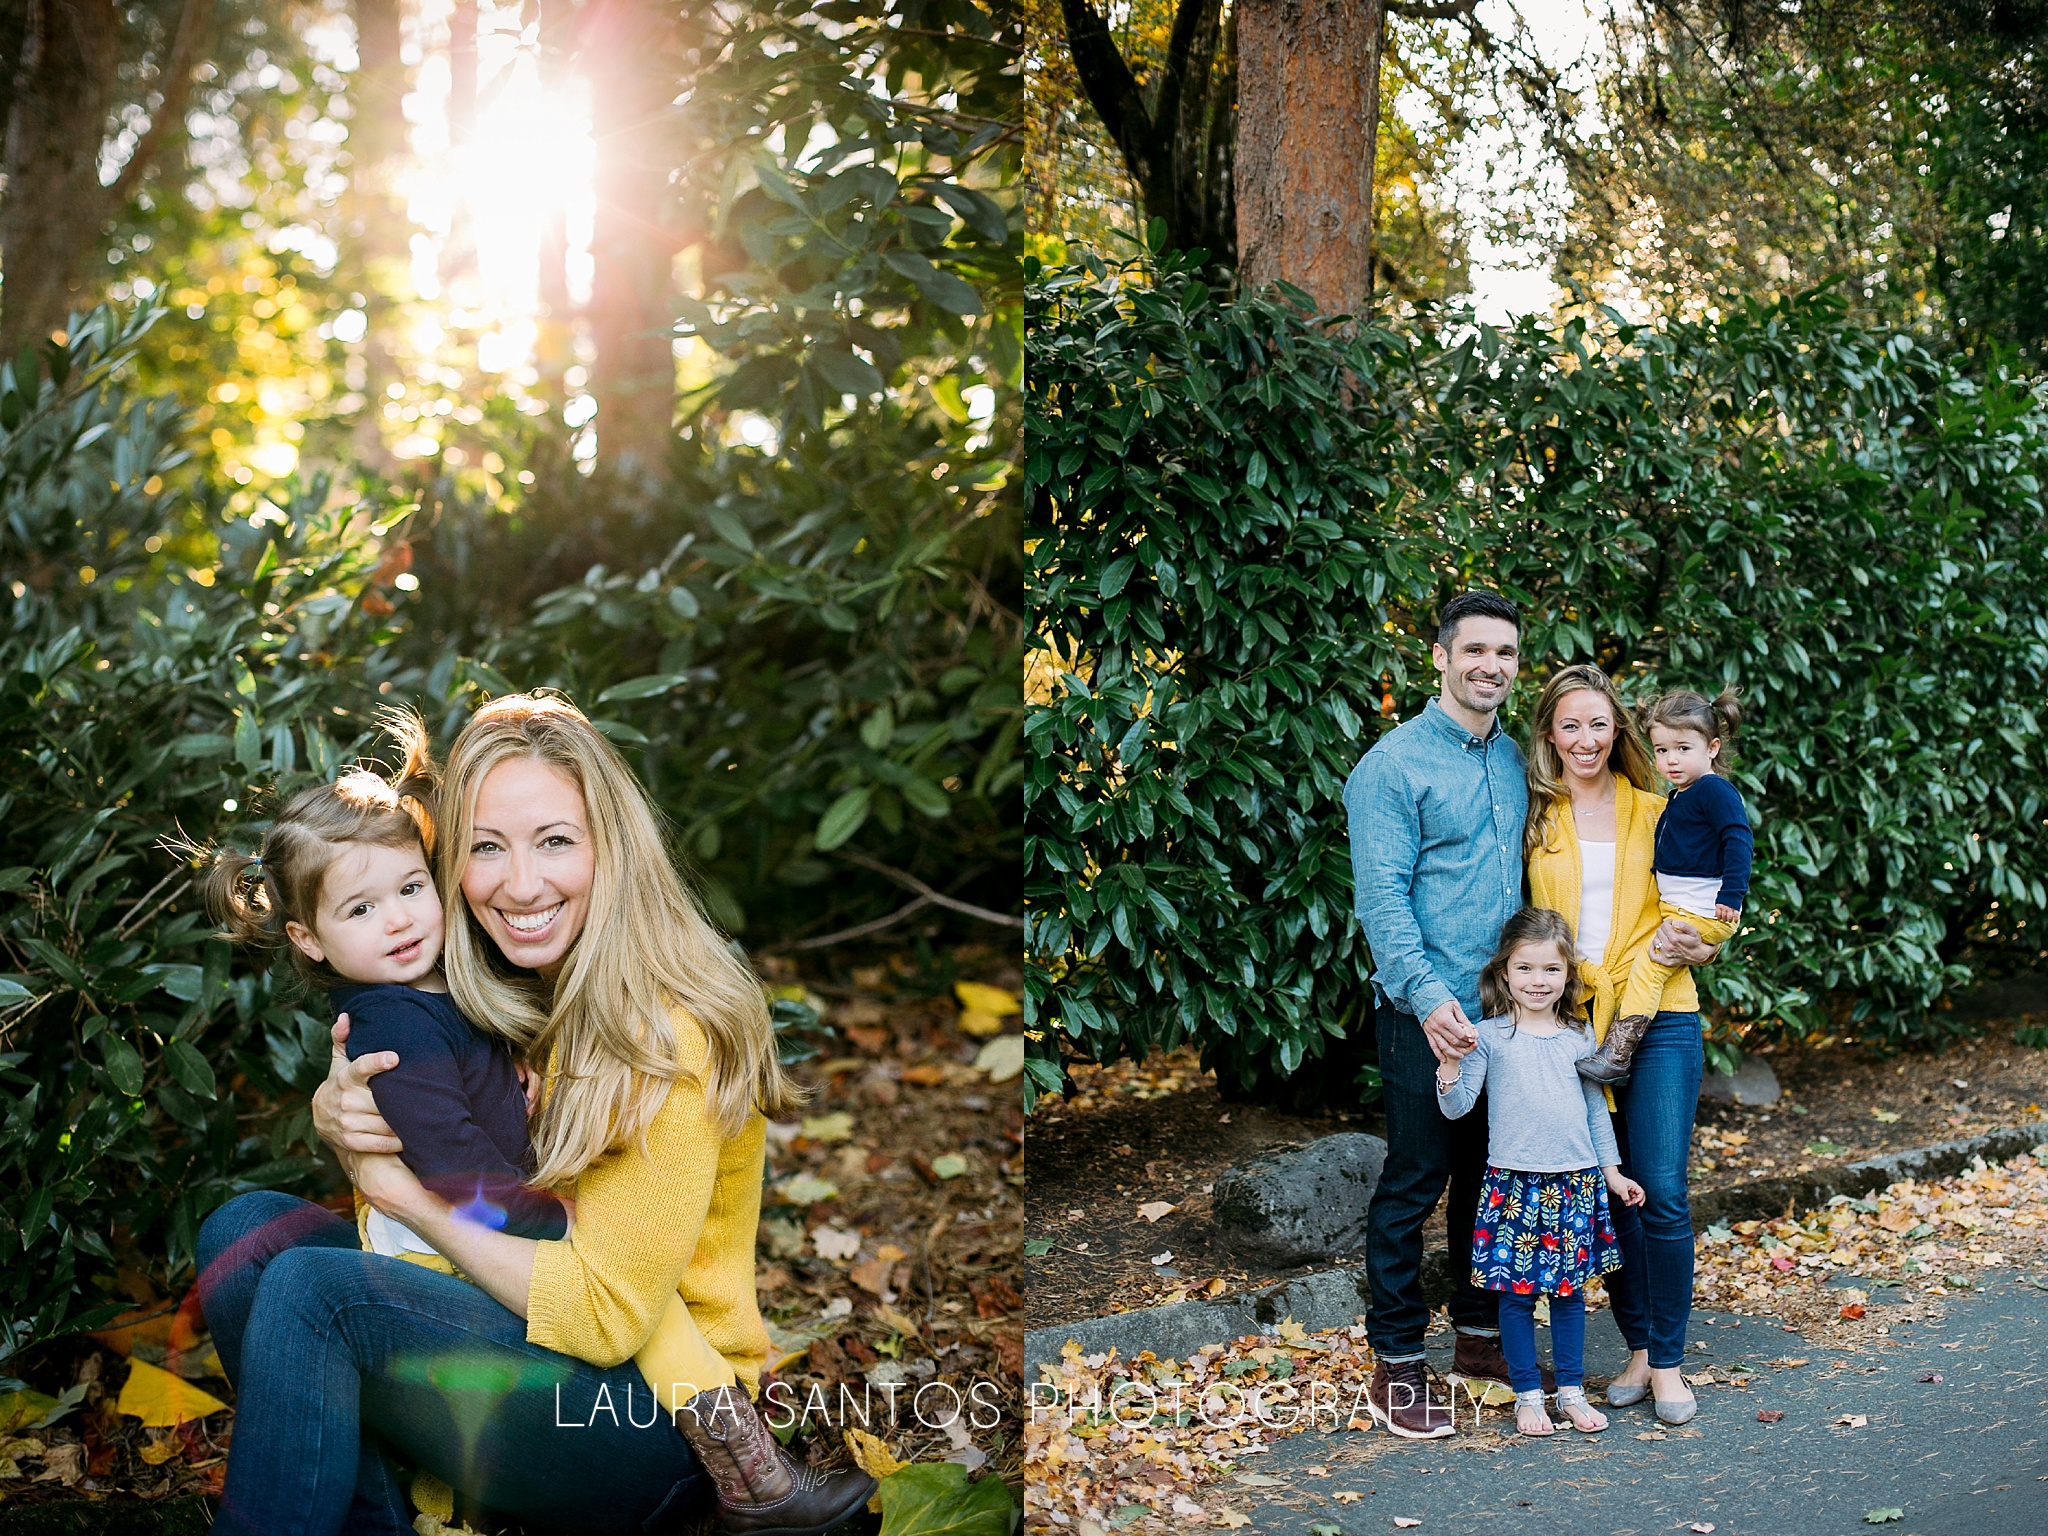 Laura Santos Photography Portland Oregon Family Photographer_0091.jpg